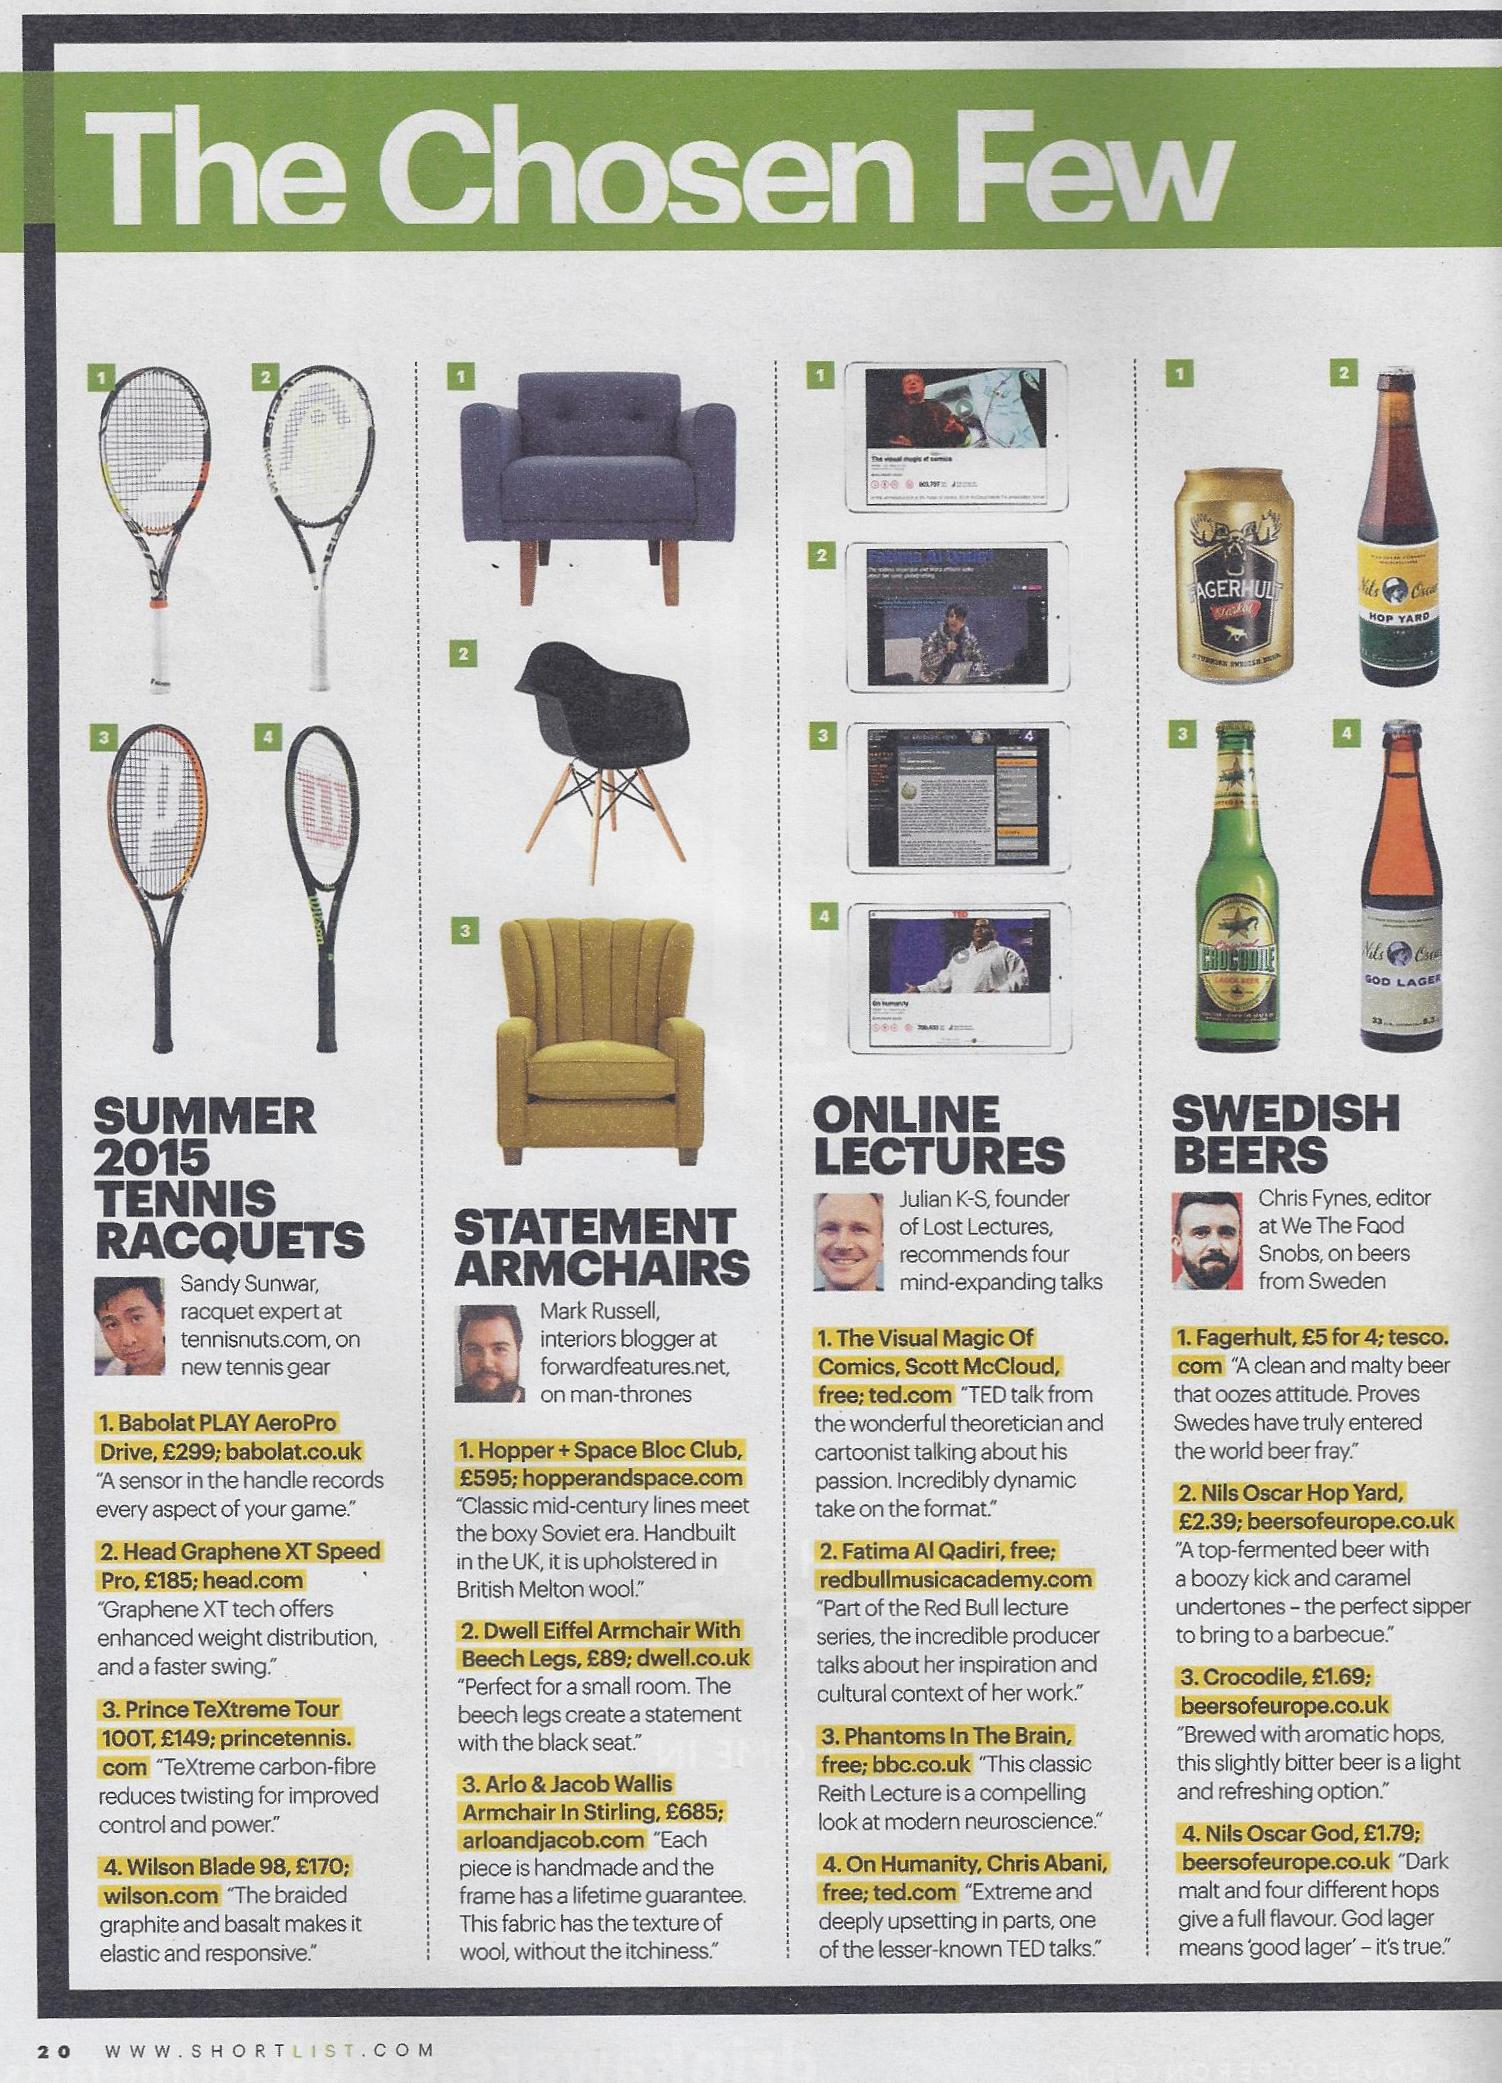 Our Chosen Few Man Thrones In Shortlist Magazine